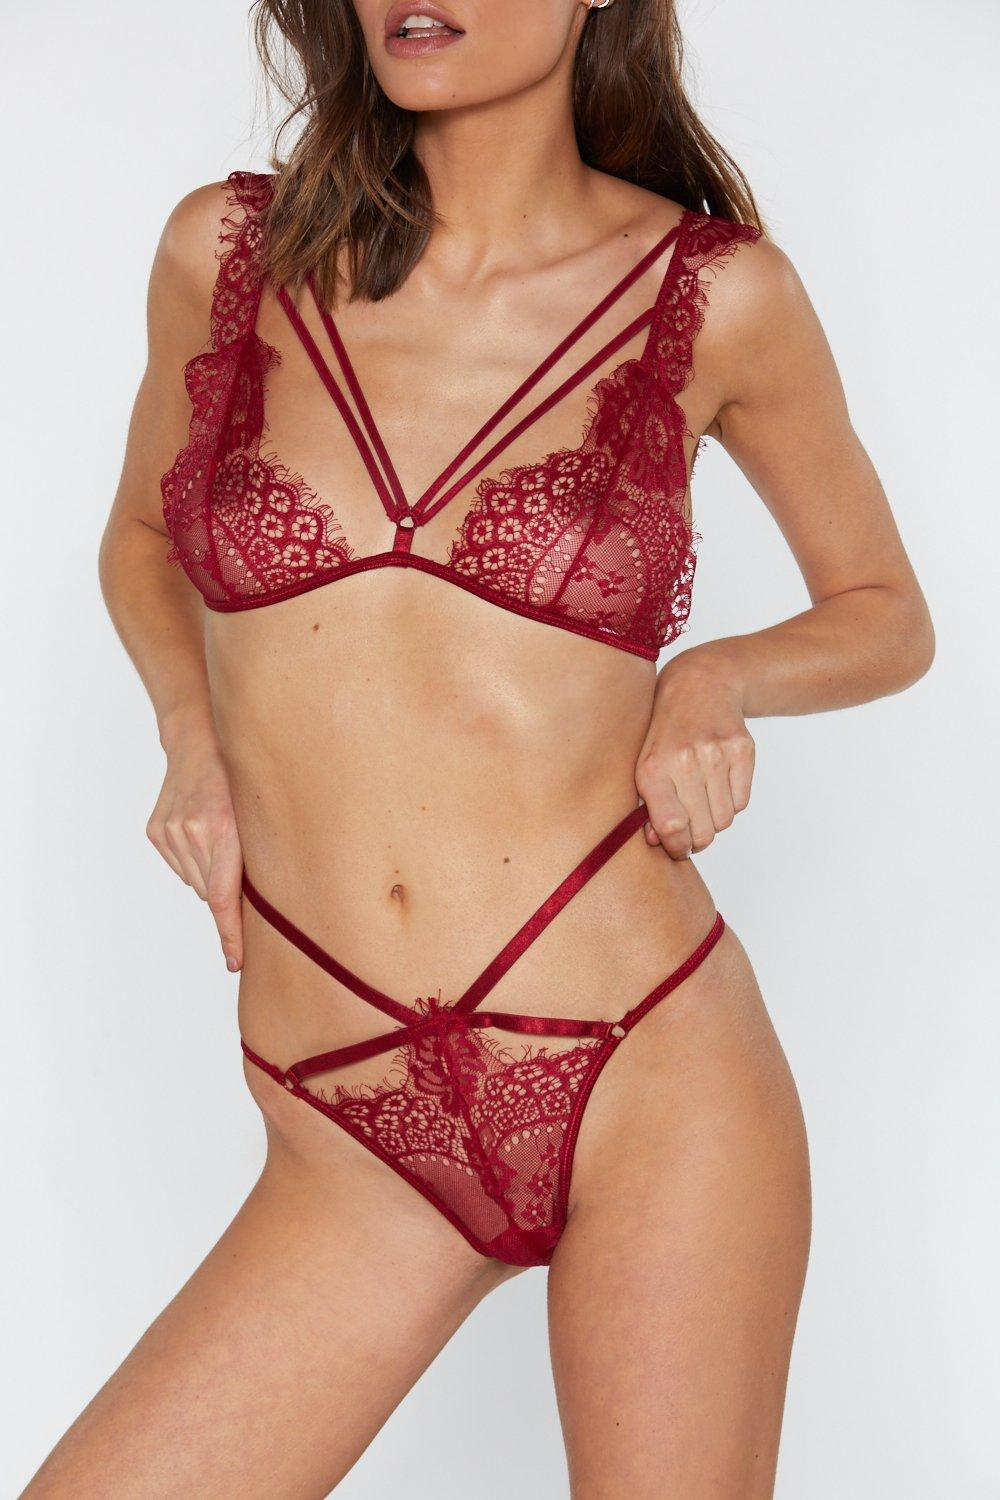 e99238b253 Burning Up Strappy Lace Bralette and Panty Set